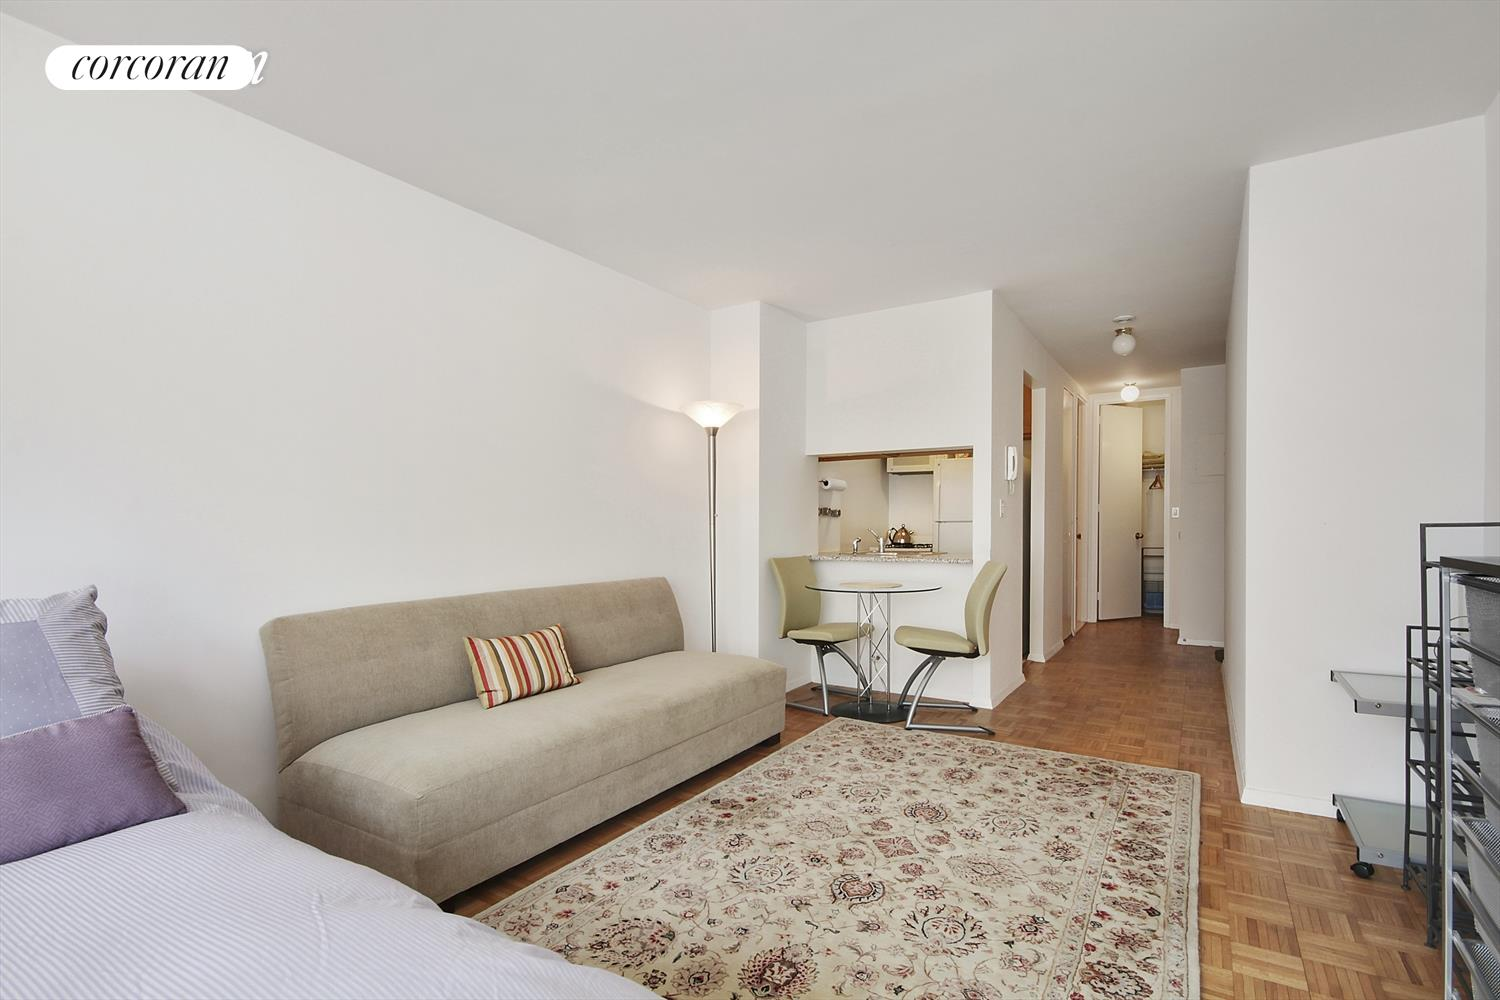 "Residence 12A is a fully furnished renovated corner studio with open bright, sunny, city views to the North and the midtown skyline views to the East and South. Pass-thru kitchen with new appliances, countertops, and cabinets. Nice walk in closet plus a linen closet and a large coat closet. The building has a live-in Resident Manager and the amenities include 24-hour Concierge, doorman, eight laundry rooms, and a ""Resident's only"" courtyard.Connected to the building is a 40,000 sq. ft. new ""Elite Sports Club"" gym with the latest technology, 25-meter saltwater pool, sauna, exercise studio and virtual reality spin room with an immersive 30-foot video wall. Monthly and annual memberships available. The Residences at Worldwide Plaza is a full-service condominium ideally located in the heart of the vibrant Manhattan's theater district and the Midtown Financial District, close to Central Park, Lincoln Center, the Hudson River Park, Rockefeller Center, St. Patrick's Cathedral, numerous restaurants, museums and points of interest. The garage on the premises is available to residents for a nominal fee.Minutes to the C, E, 1, W, N, R, B, D, F, and M subway lines and cross-town buses No smoking please no pets."